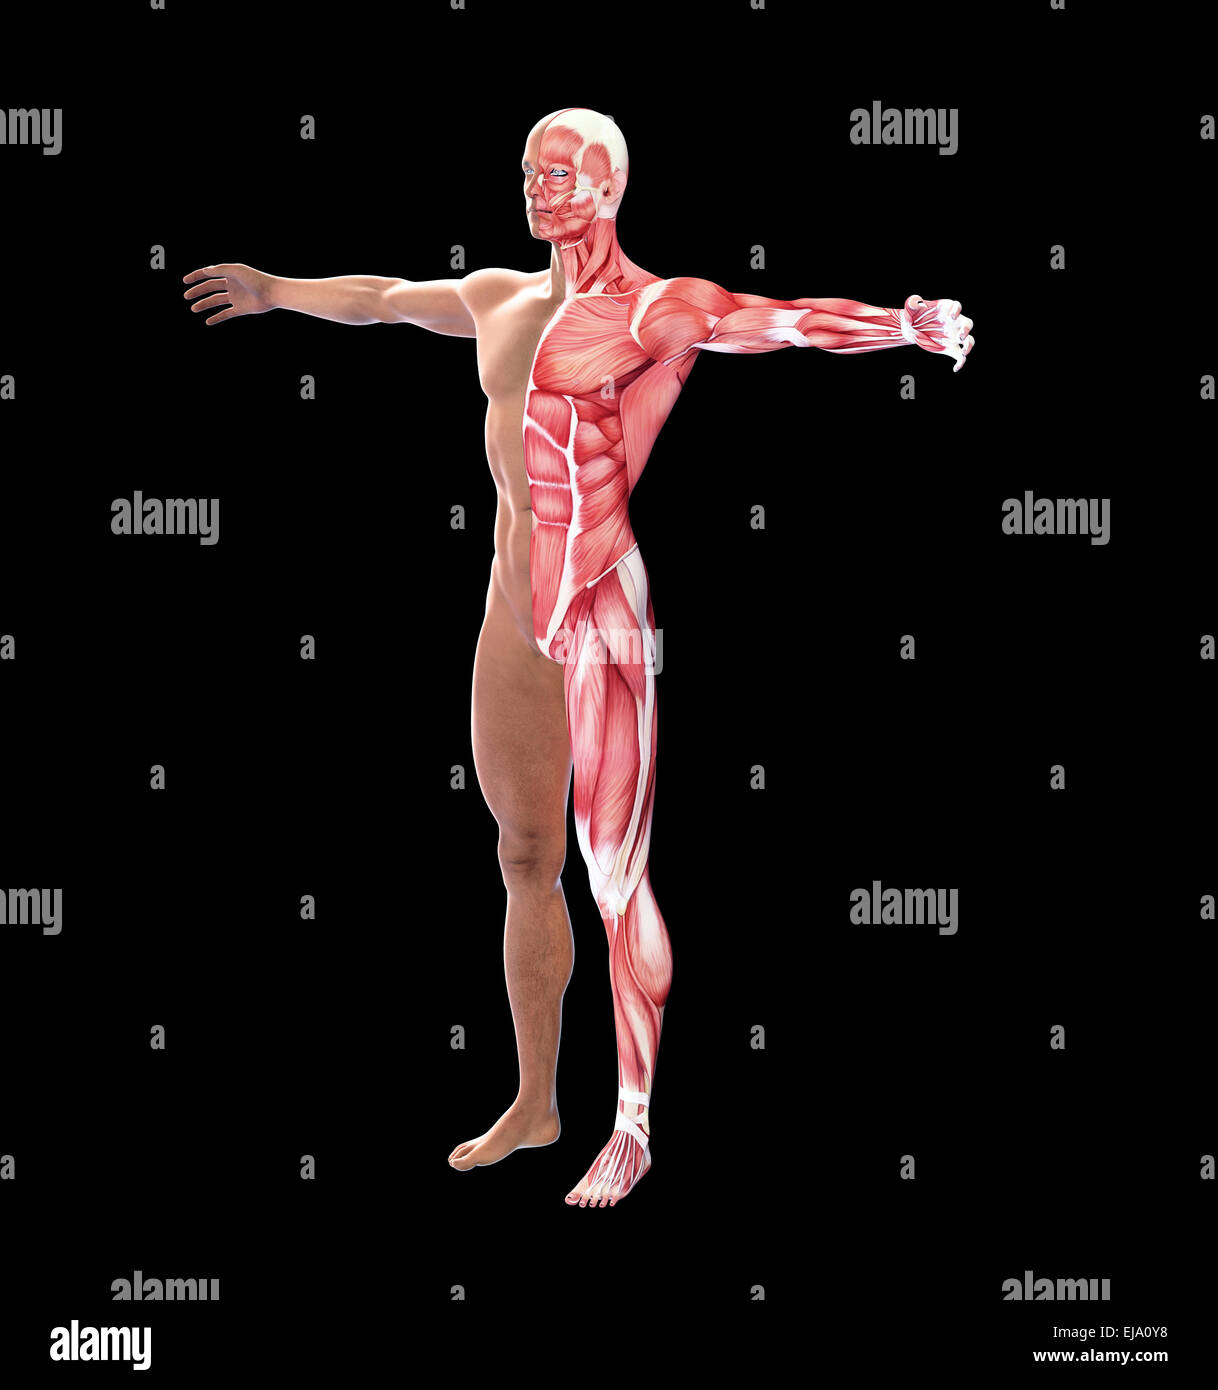 Human anatomy with visible  muscles - Stock Image